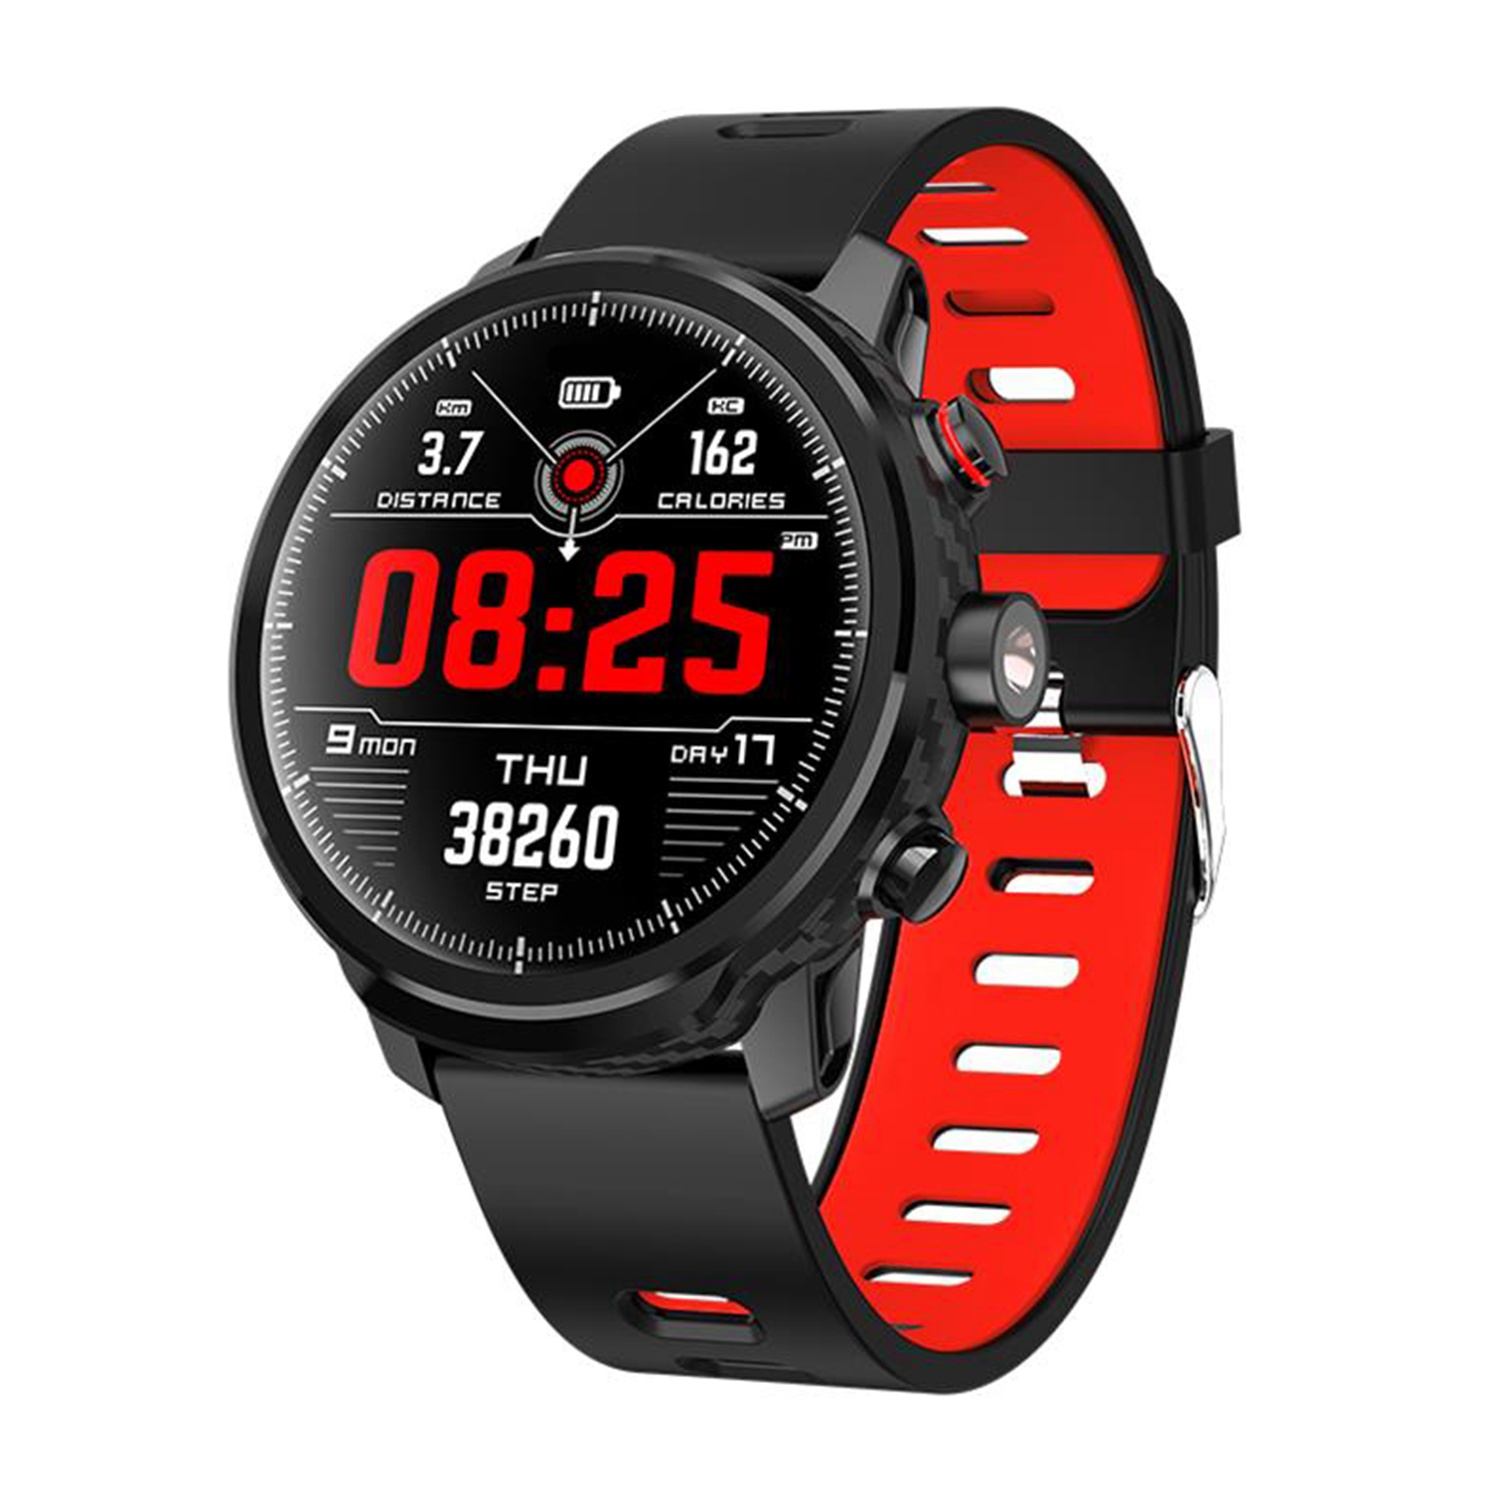 L5 Smart Watch Waterproof Men'S Smart Watch Bluetooth Android Bracelet Call Reminder Heart Rate Pedometer Swimming Ip68